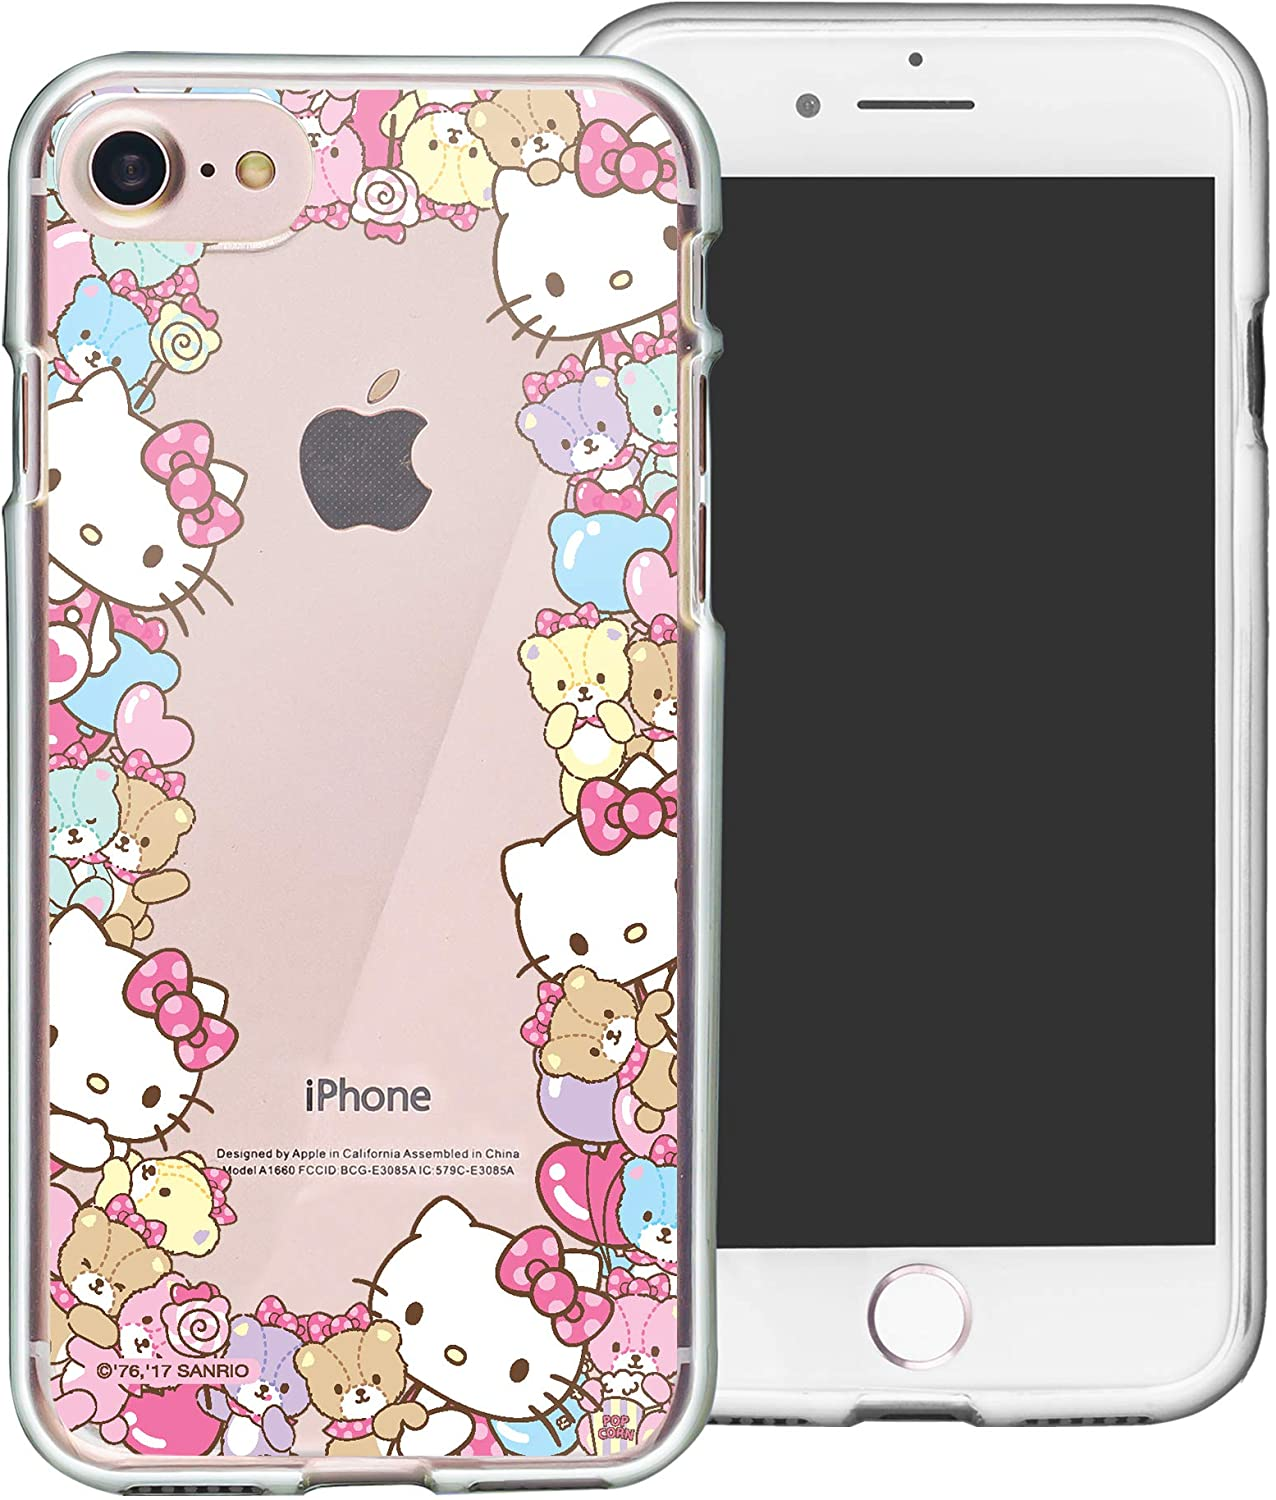 WiLLBee Compatible with iPhone 5S / iPhone 5 / iPhone SE (2016) Case Hello Kitty Cute Border Clear TPU Soft Jelly Cover - Border Hello Kitty